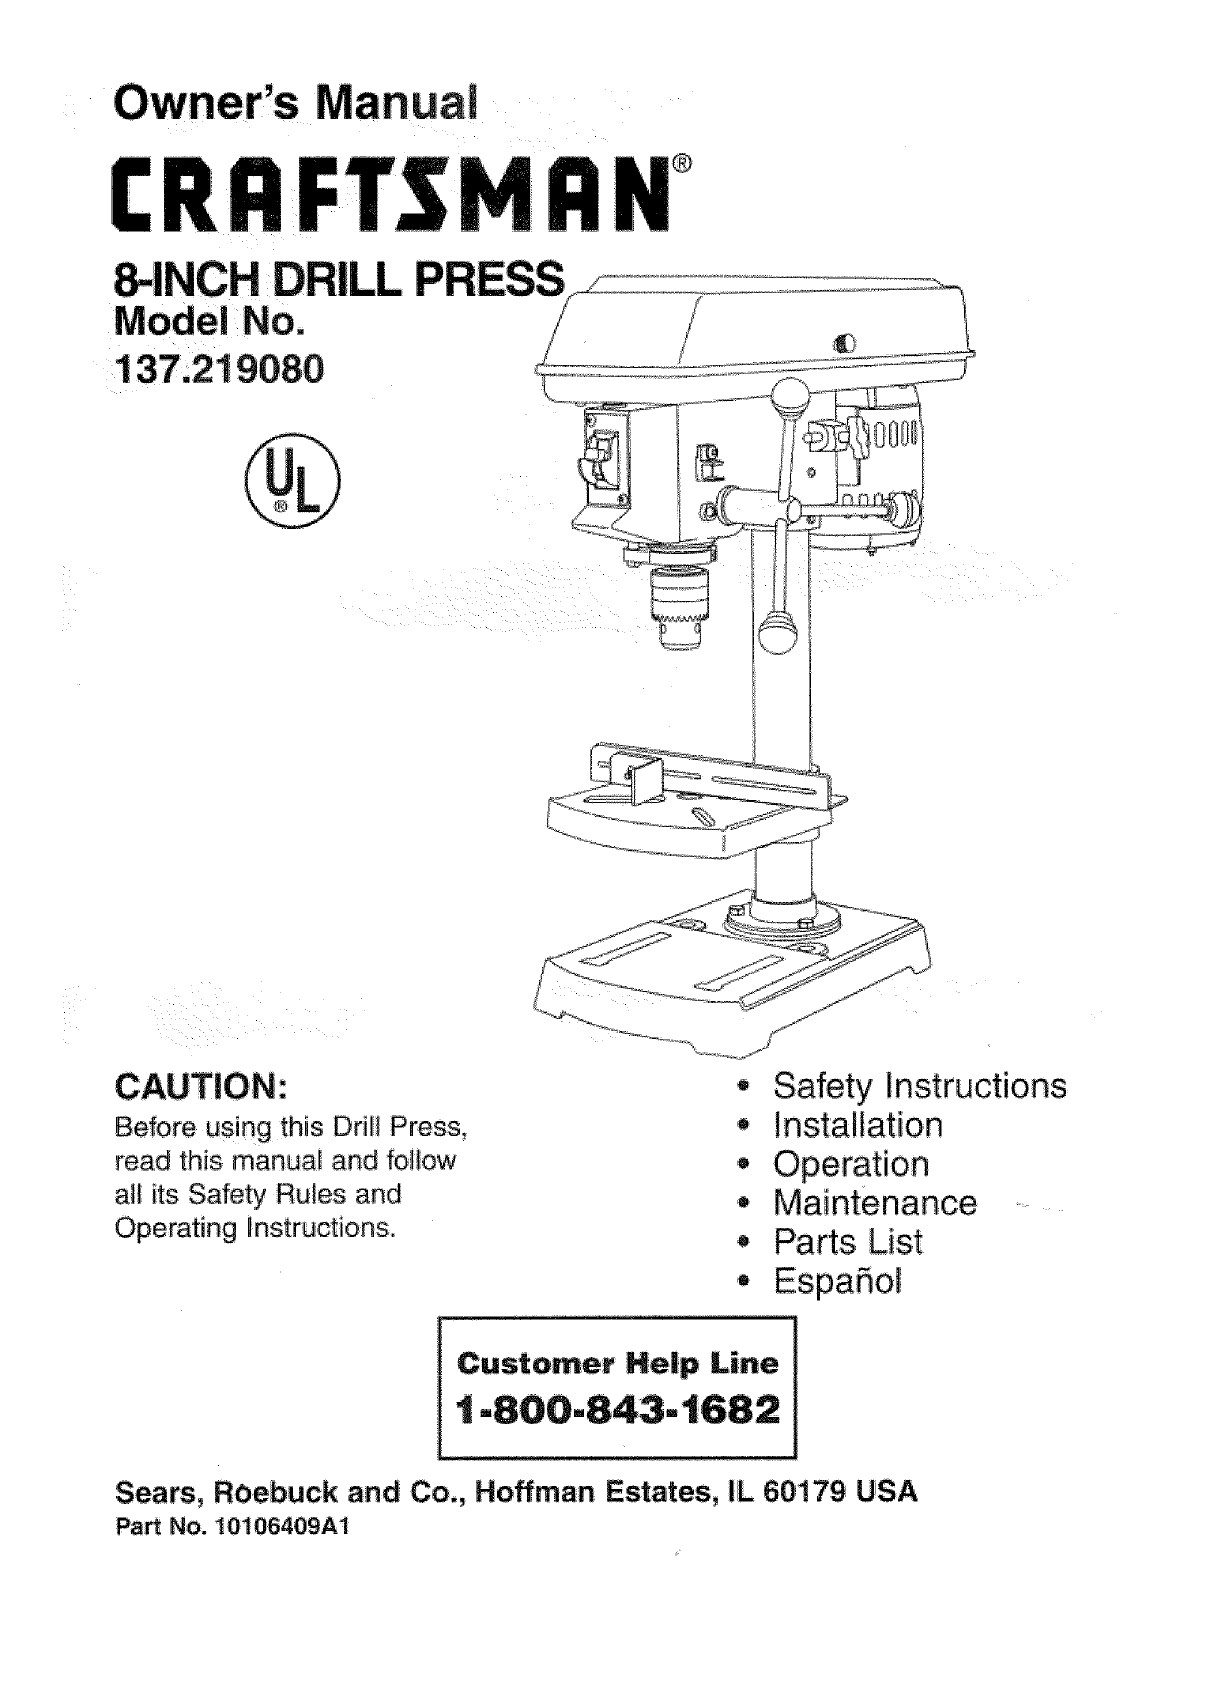 Drill Press Parts Diagram Craftsman User Manual 8 Drill Press Manuals and Guides Of Drill Press Parts Diagram Craftsman User Manual 15 1 Manuals and Guides L